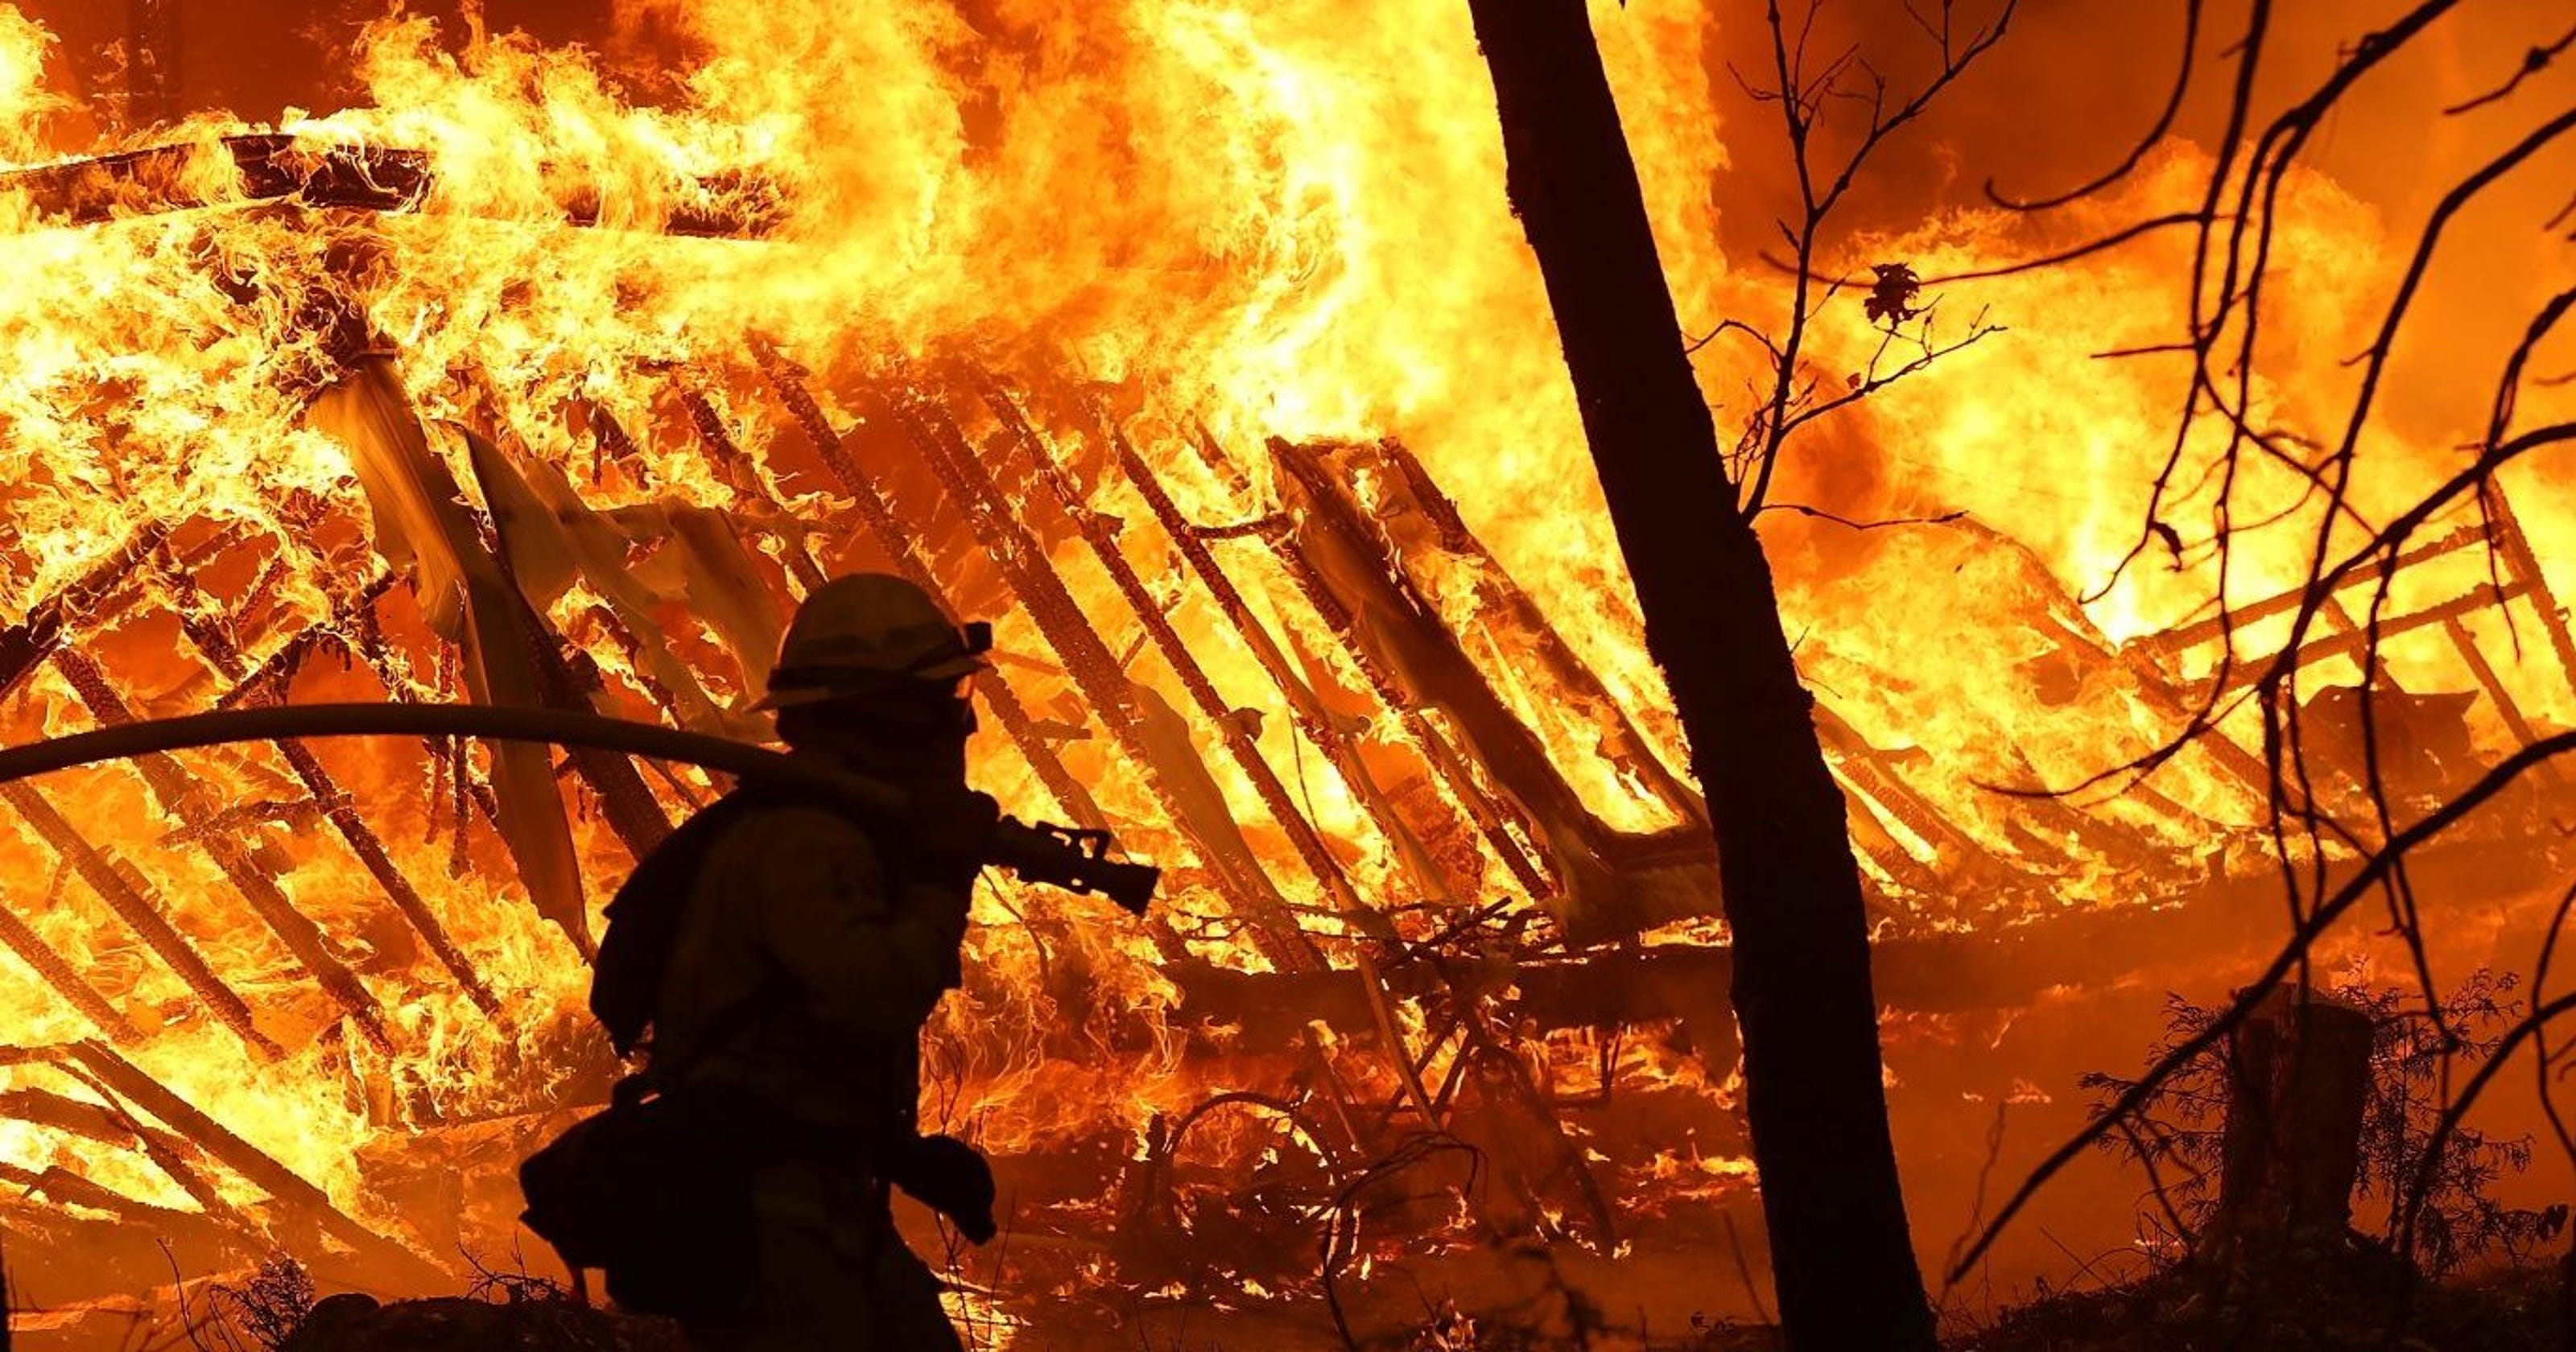 wildfire season could be worse than last year's in california